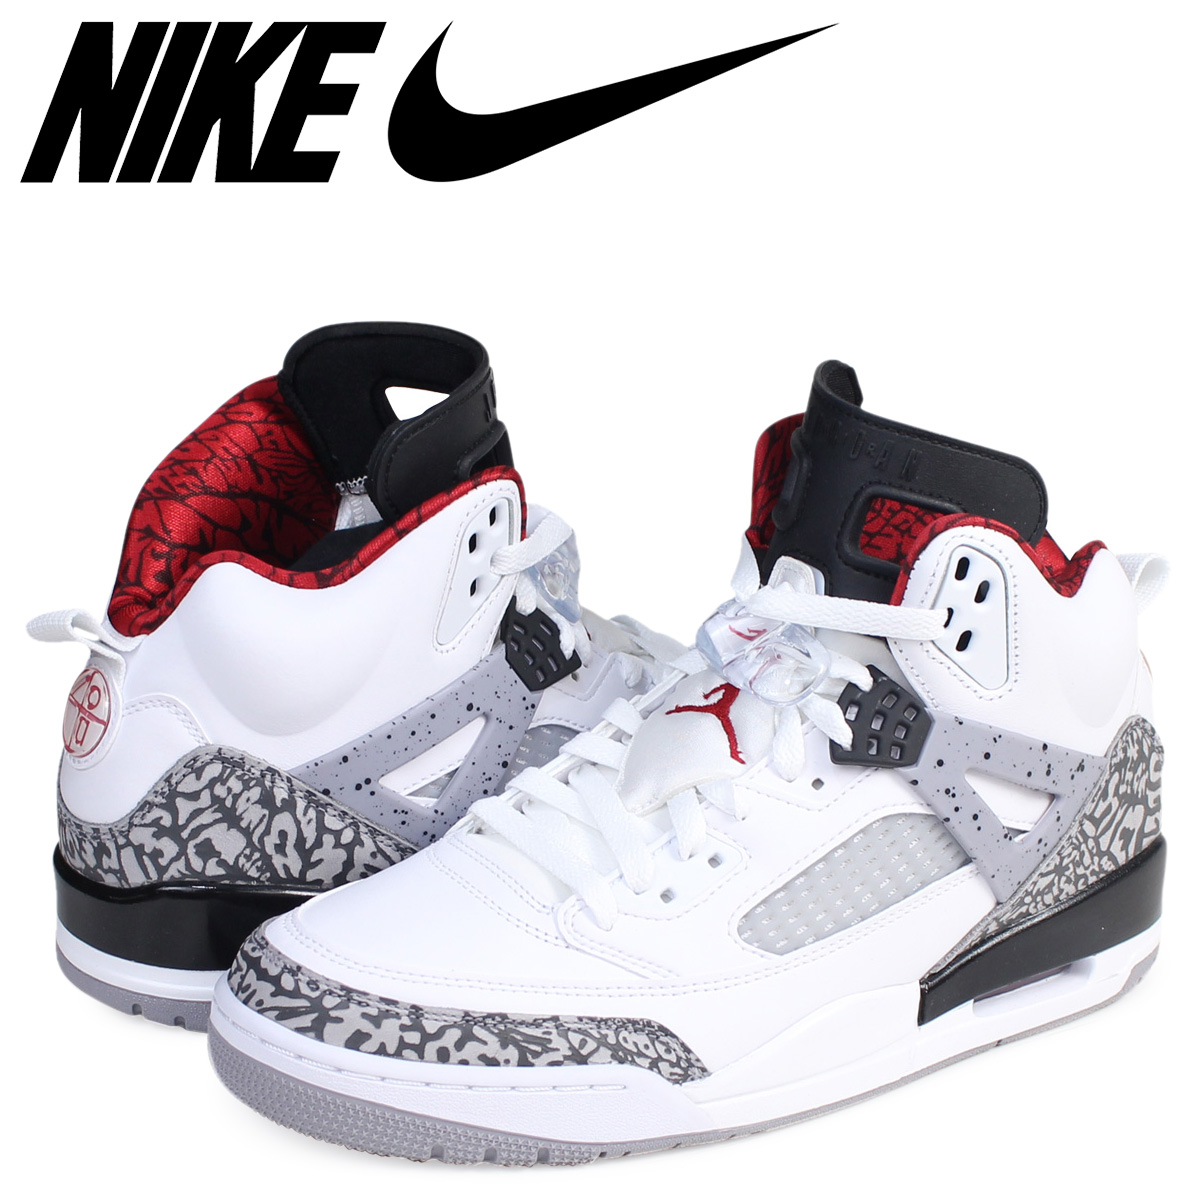 【Bランク】【26.5cm】 NIKE ナイキ AIR JORDAN SPIZIKE FRESH SINCE エア